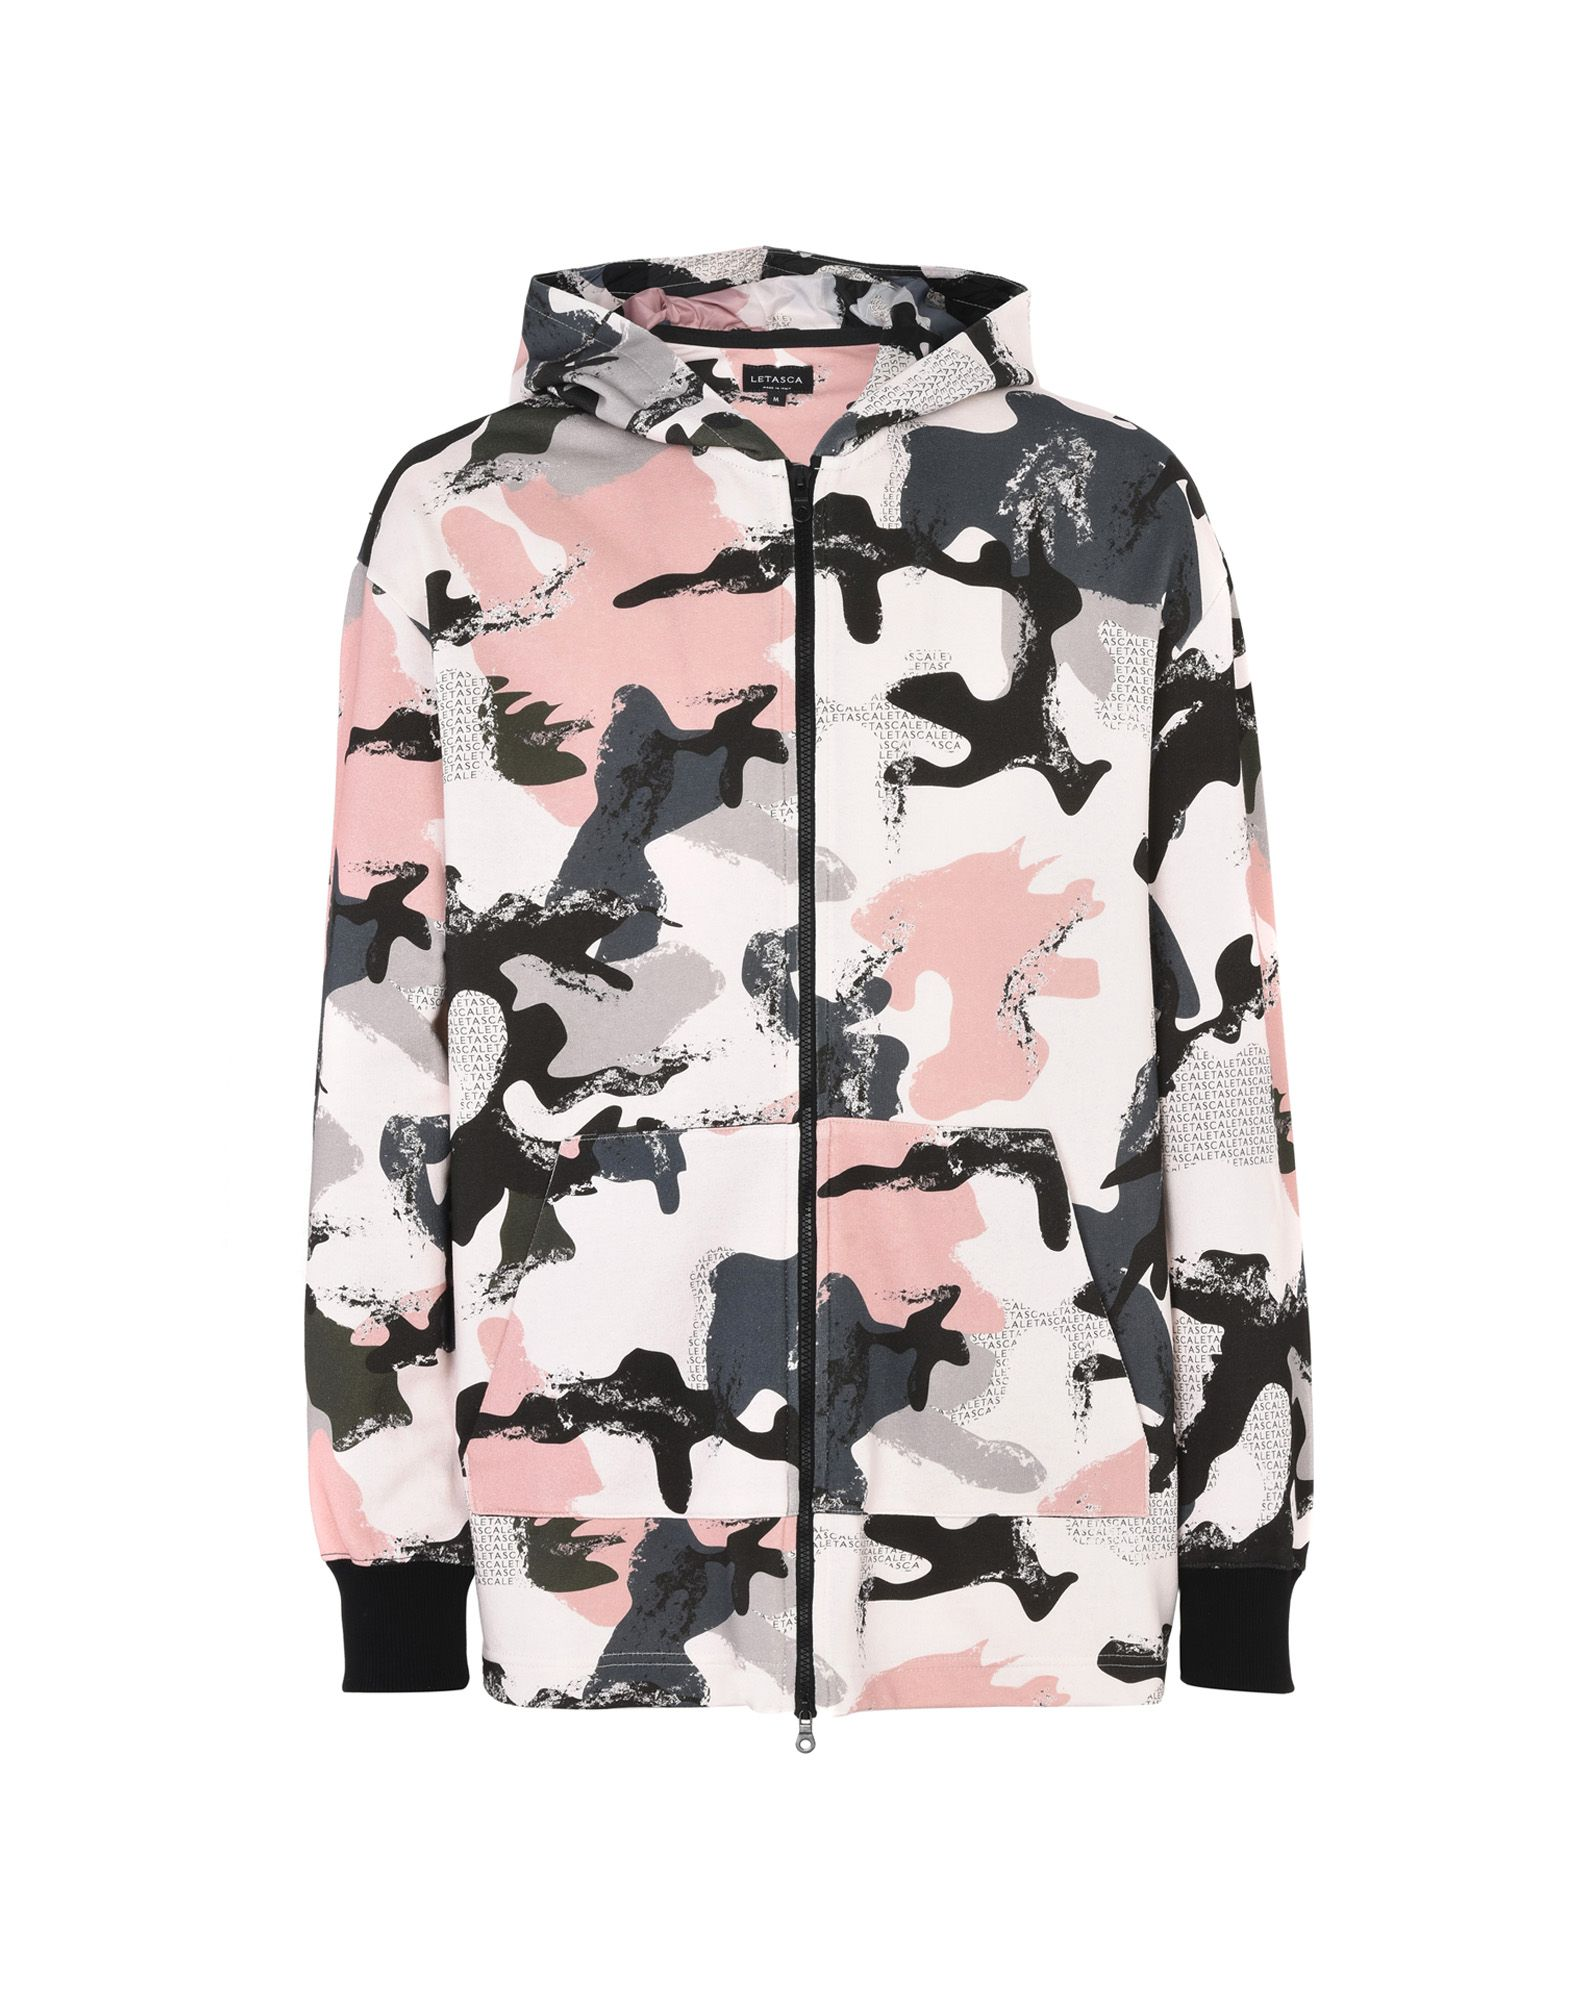 LETASCA Hooded Sweatshirt in Pink